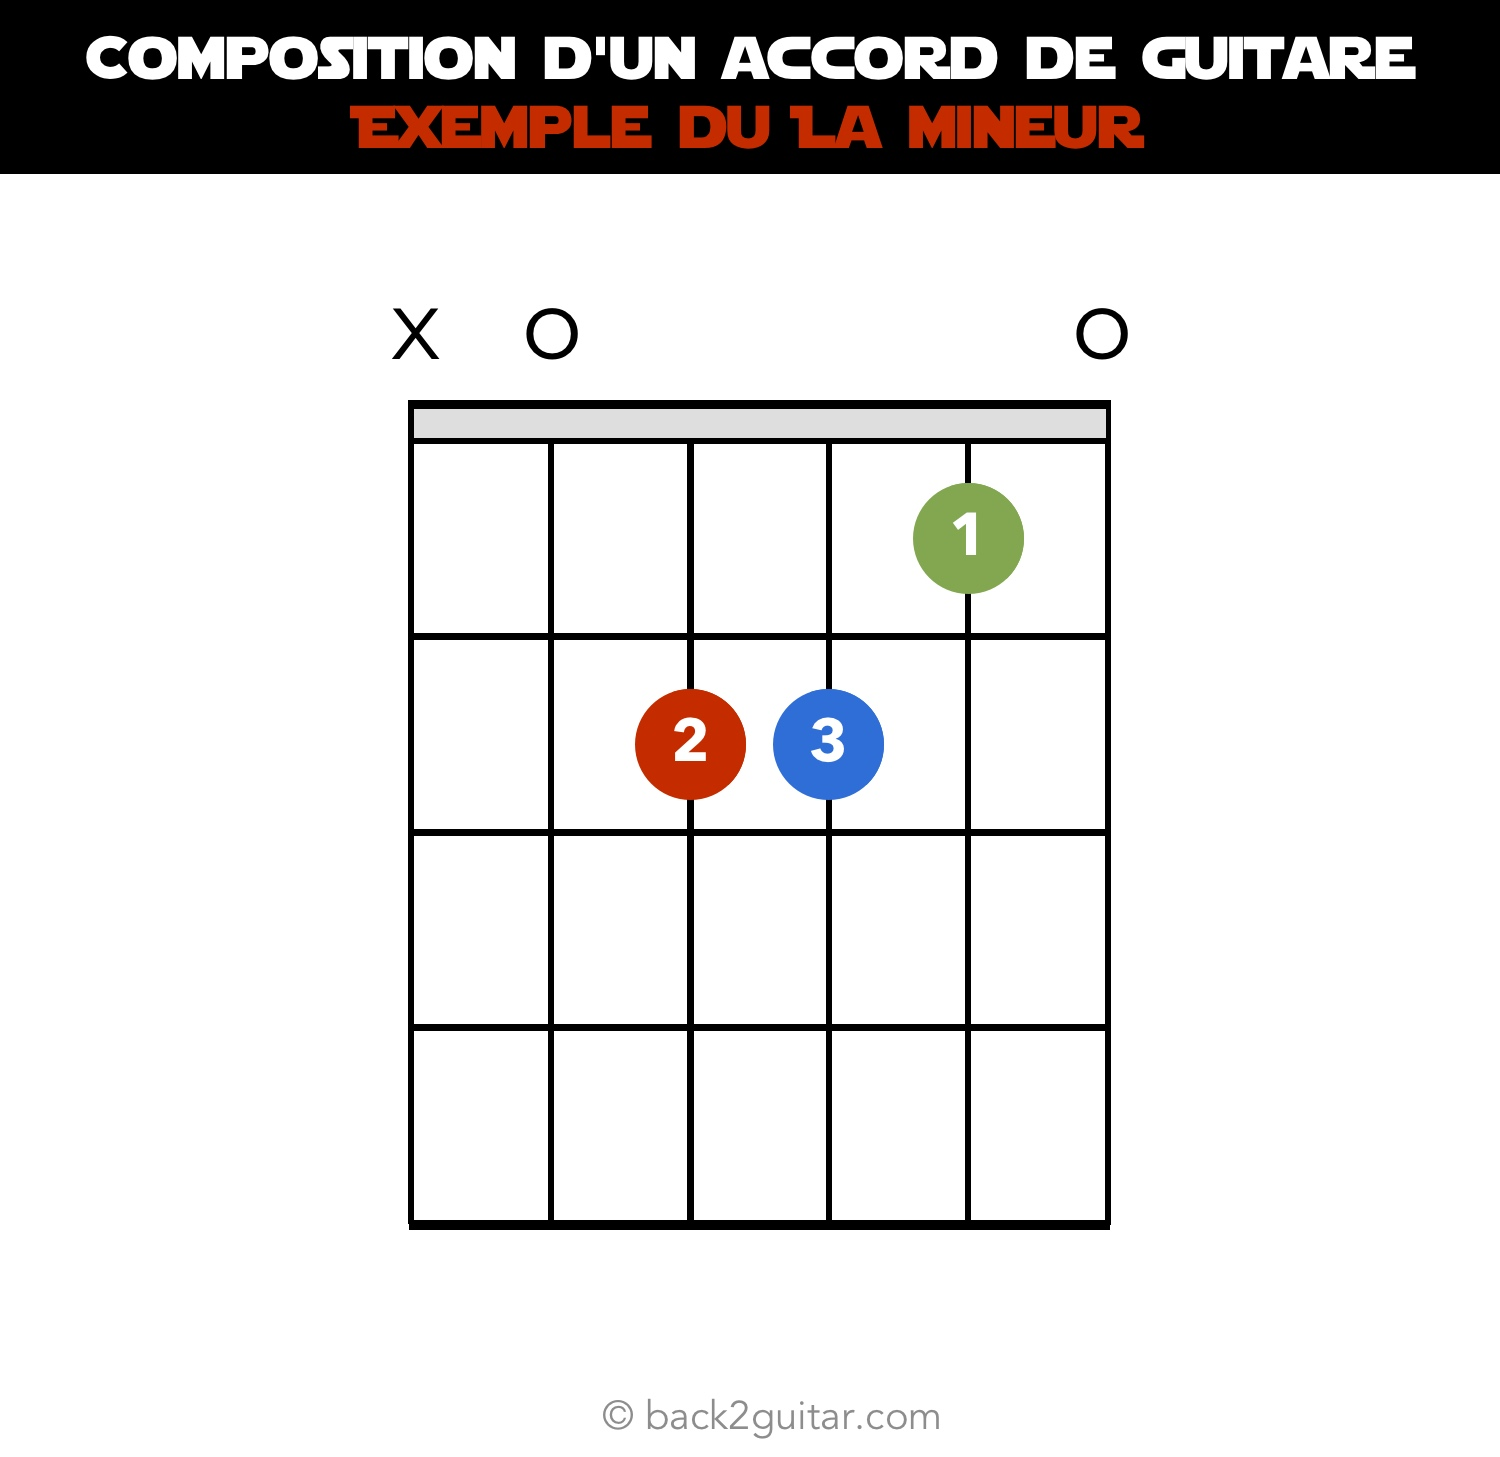 composition d'un accord de guitare